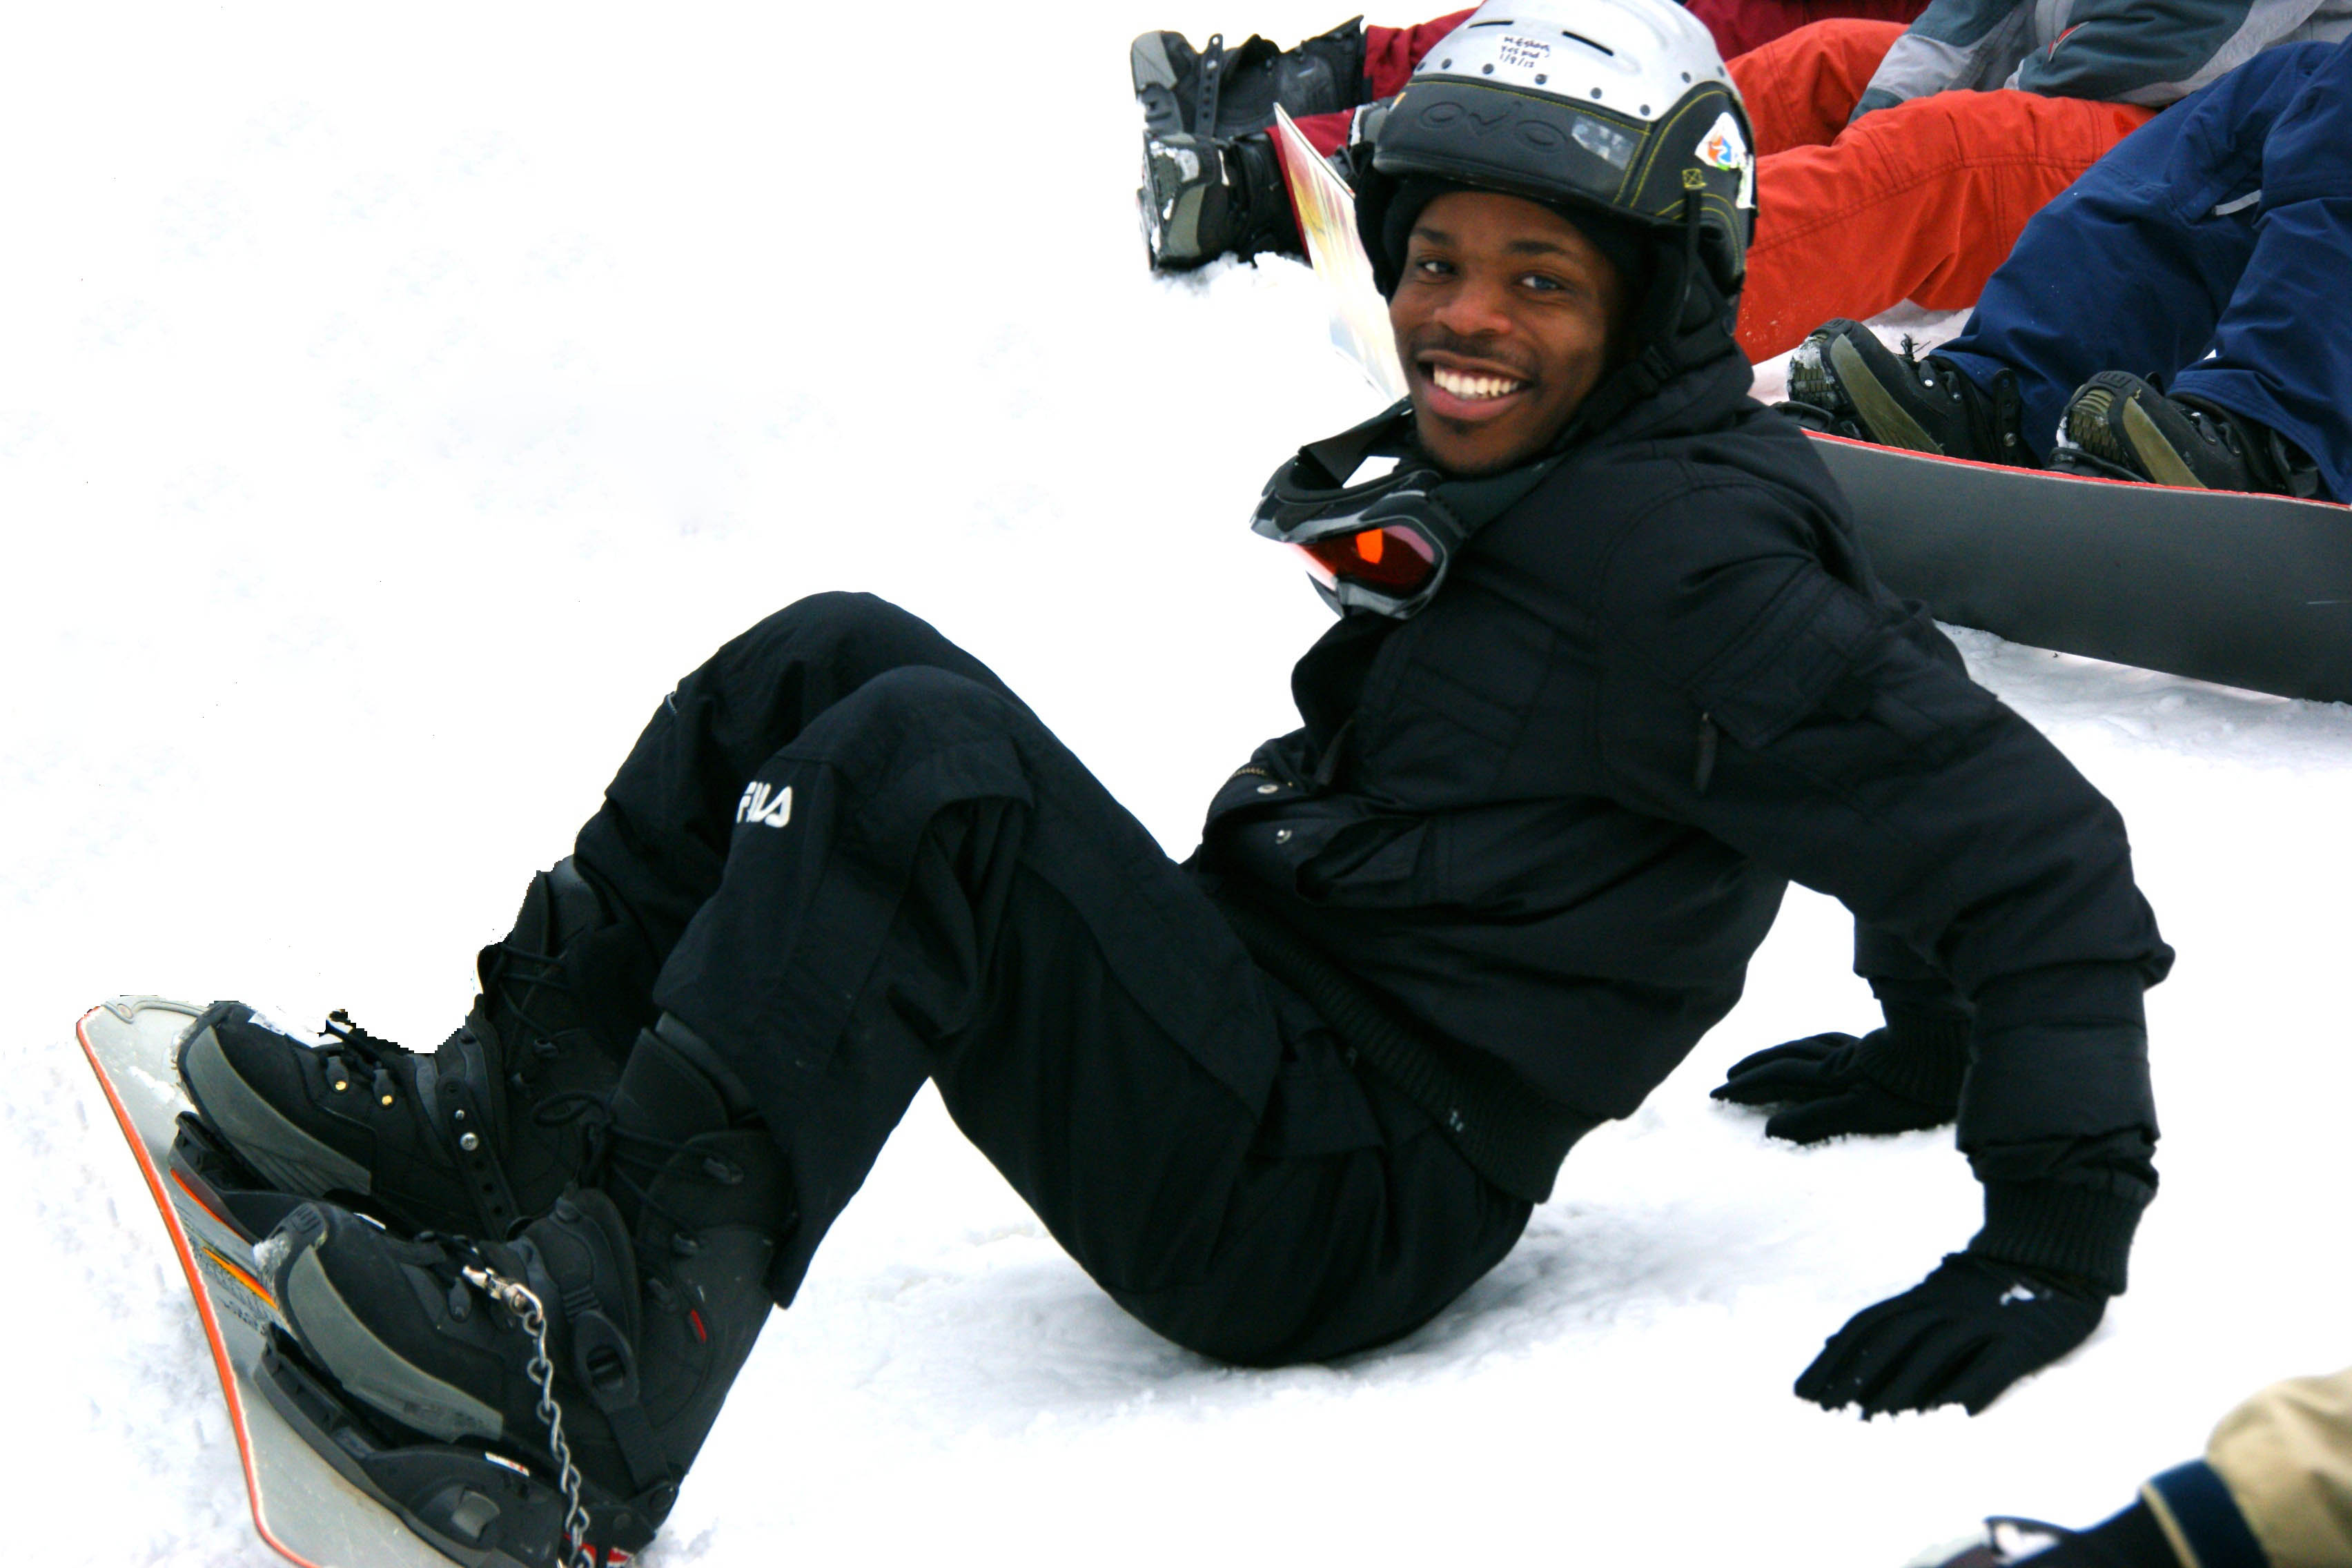 YES Snowboarder Operation SnowSports 1